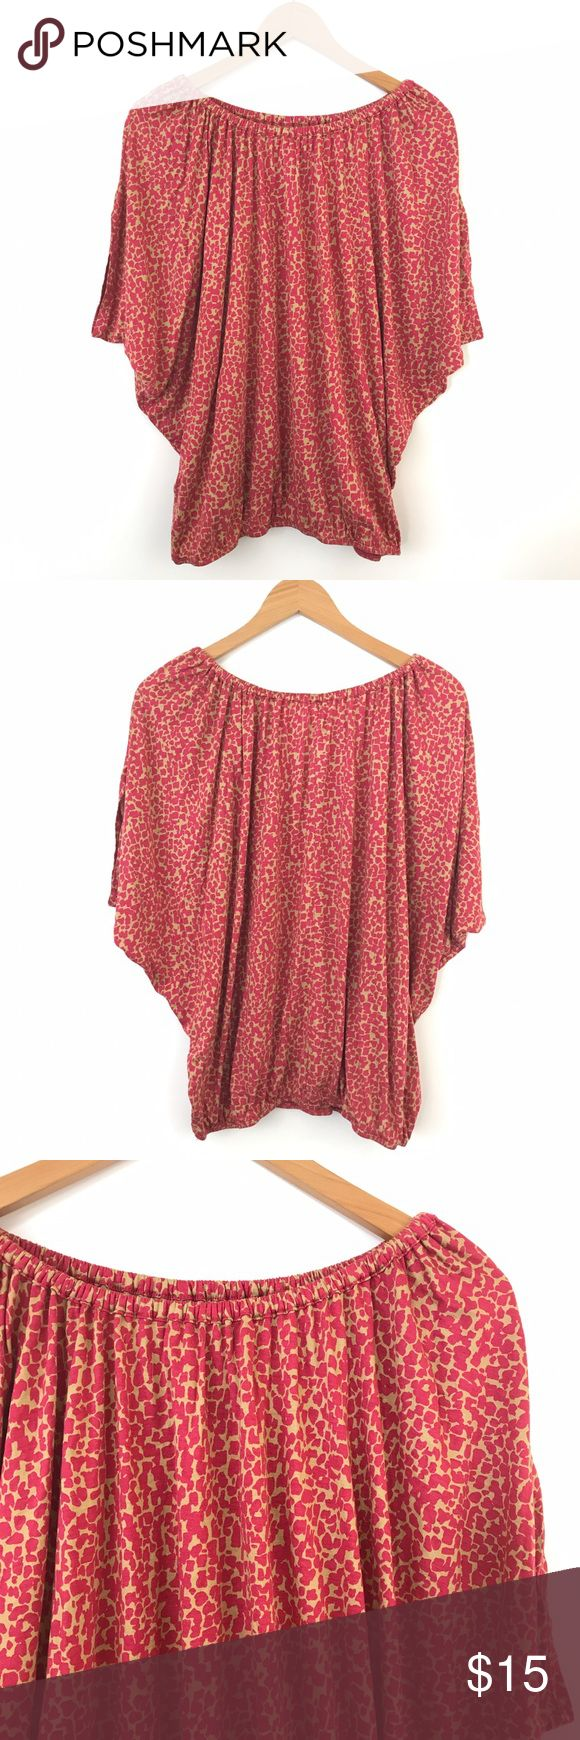 """Ann Taylor Loft Giraffe Print Pink Batwing Top S Bust: 30"""" Length: 25""""  Condition: No Rips; No Stains  70% Rayon 30% tencel   📦Orders are shipped within 24hrs! {Except weekends}📦  🚫No Trades🚫No Holds🚫 LOFT Tops Blouses"""